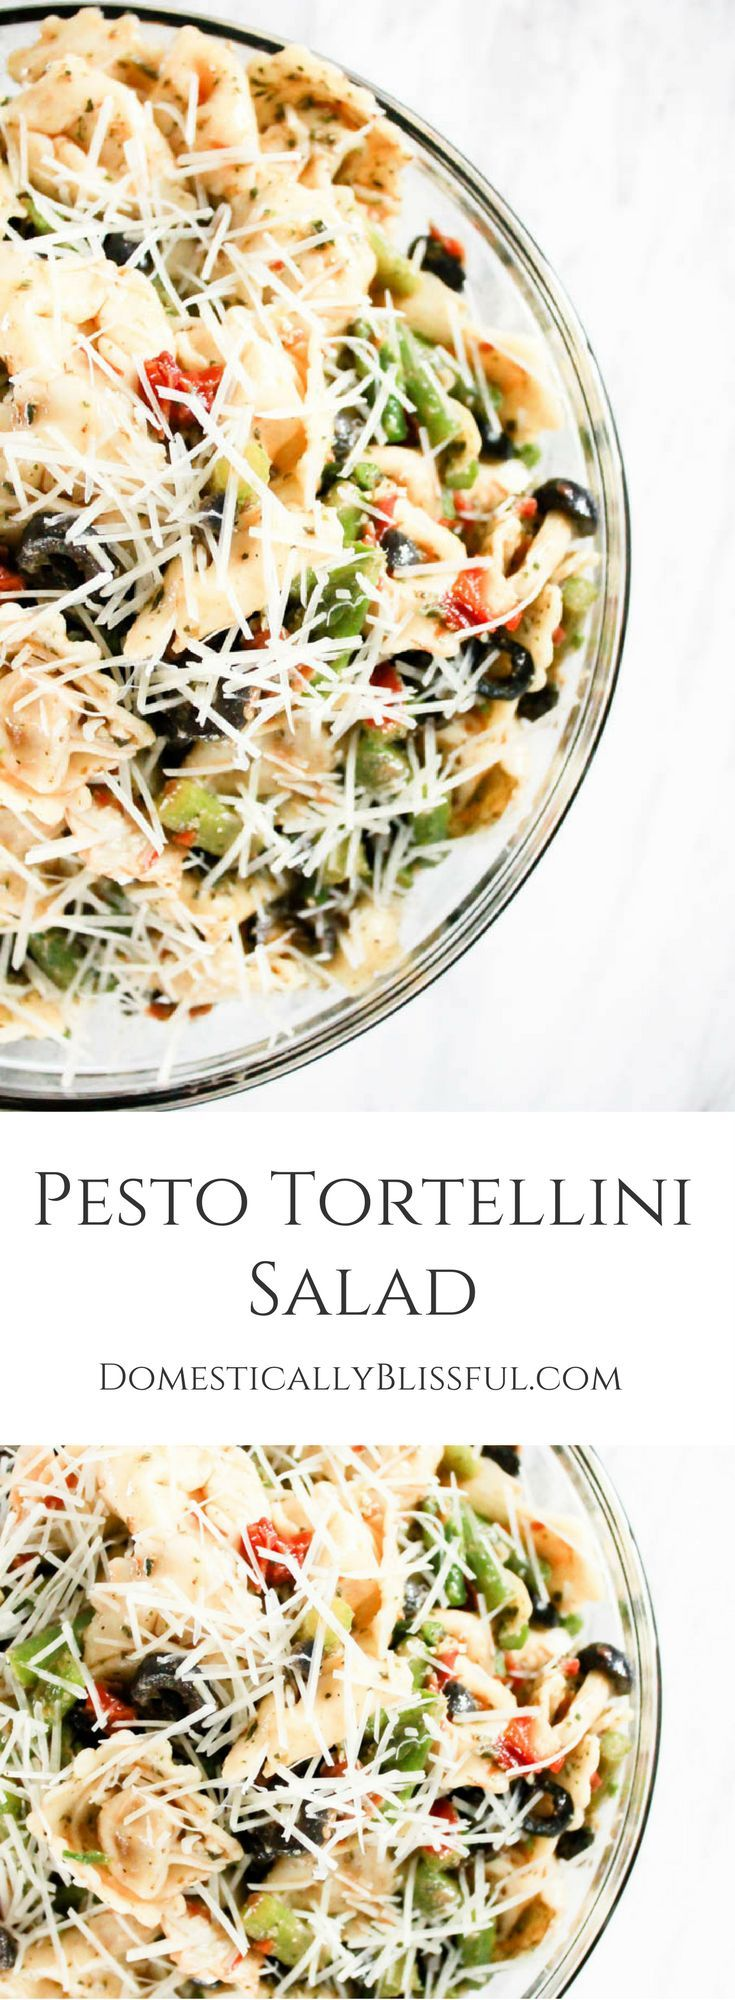 This Pesto Tortellini Salad is filled with asparagus, black olives, artichoke hearts, & sun dried tomato bruschetta making it a flavorful last minute dish for any occasion. | party pasta | pasta salad | pesto pasta salad | quick pasta salad | summer pasta